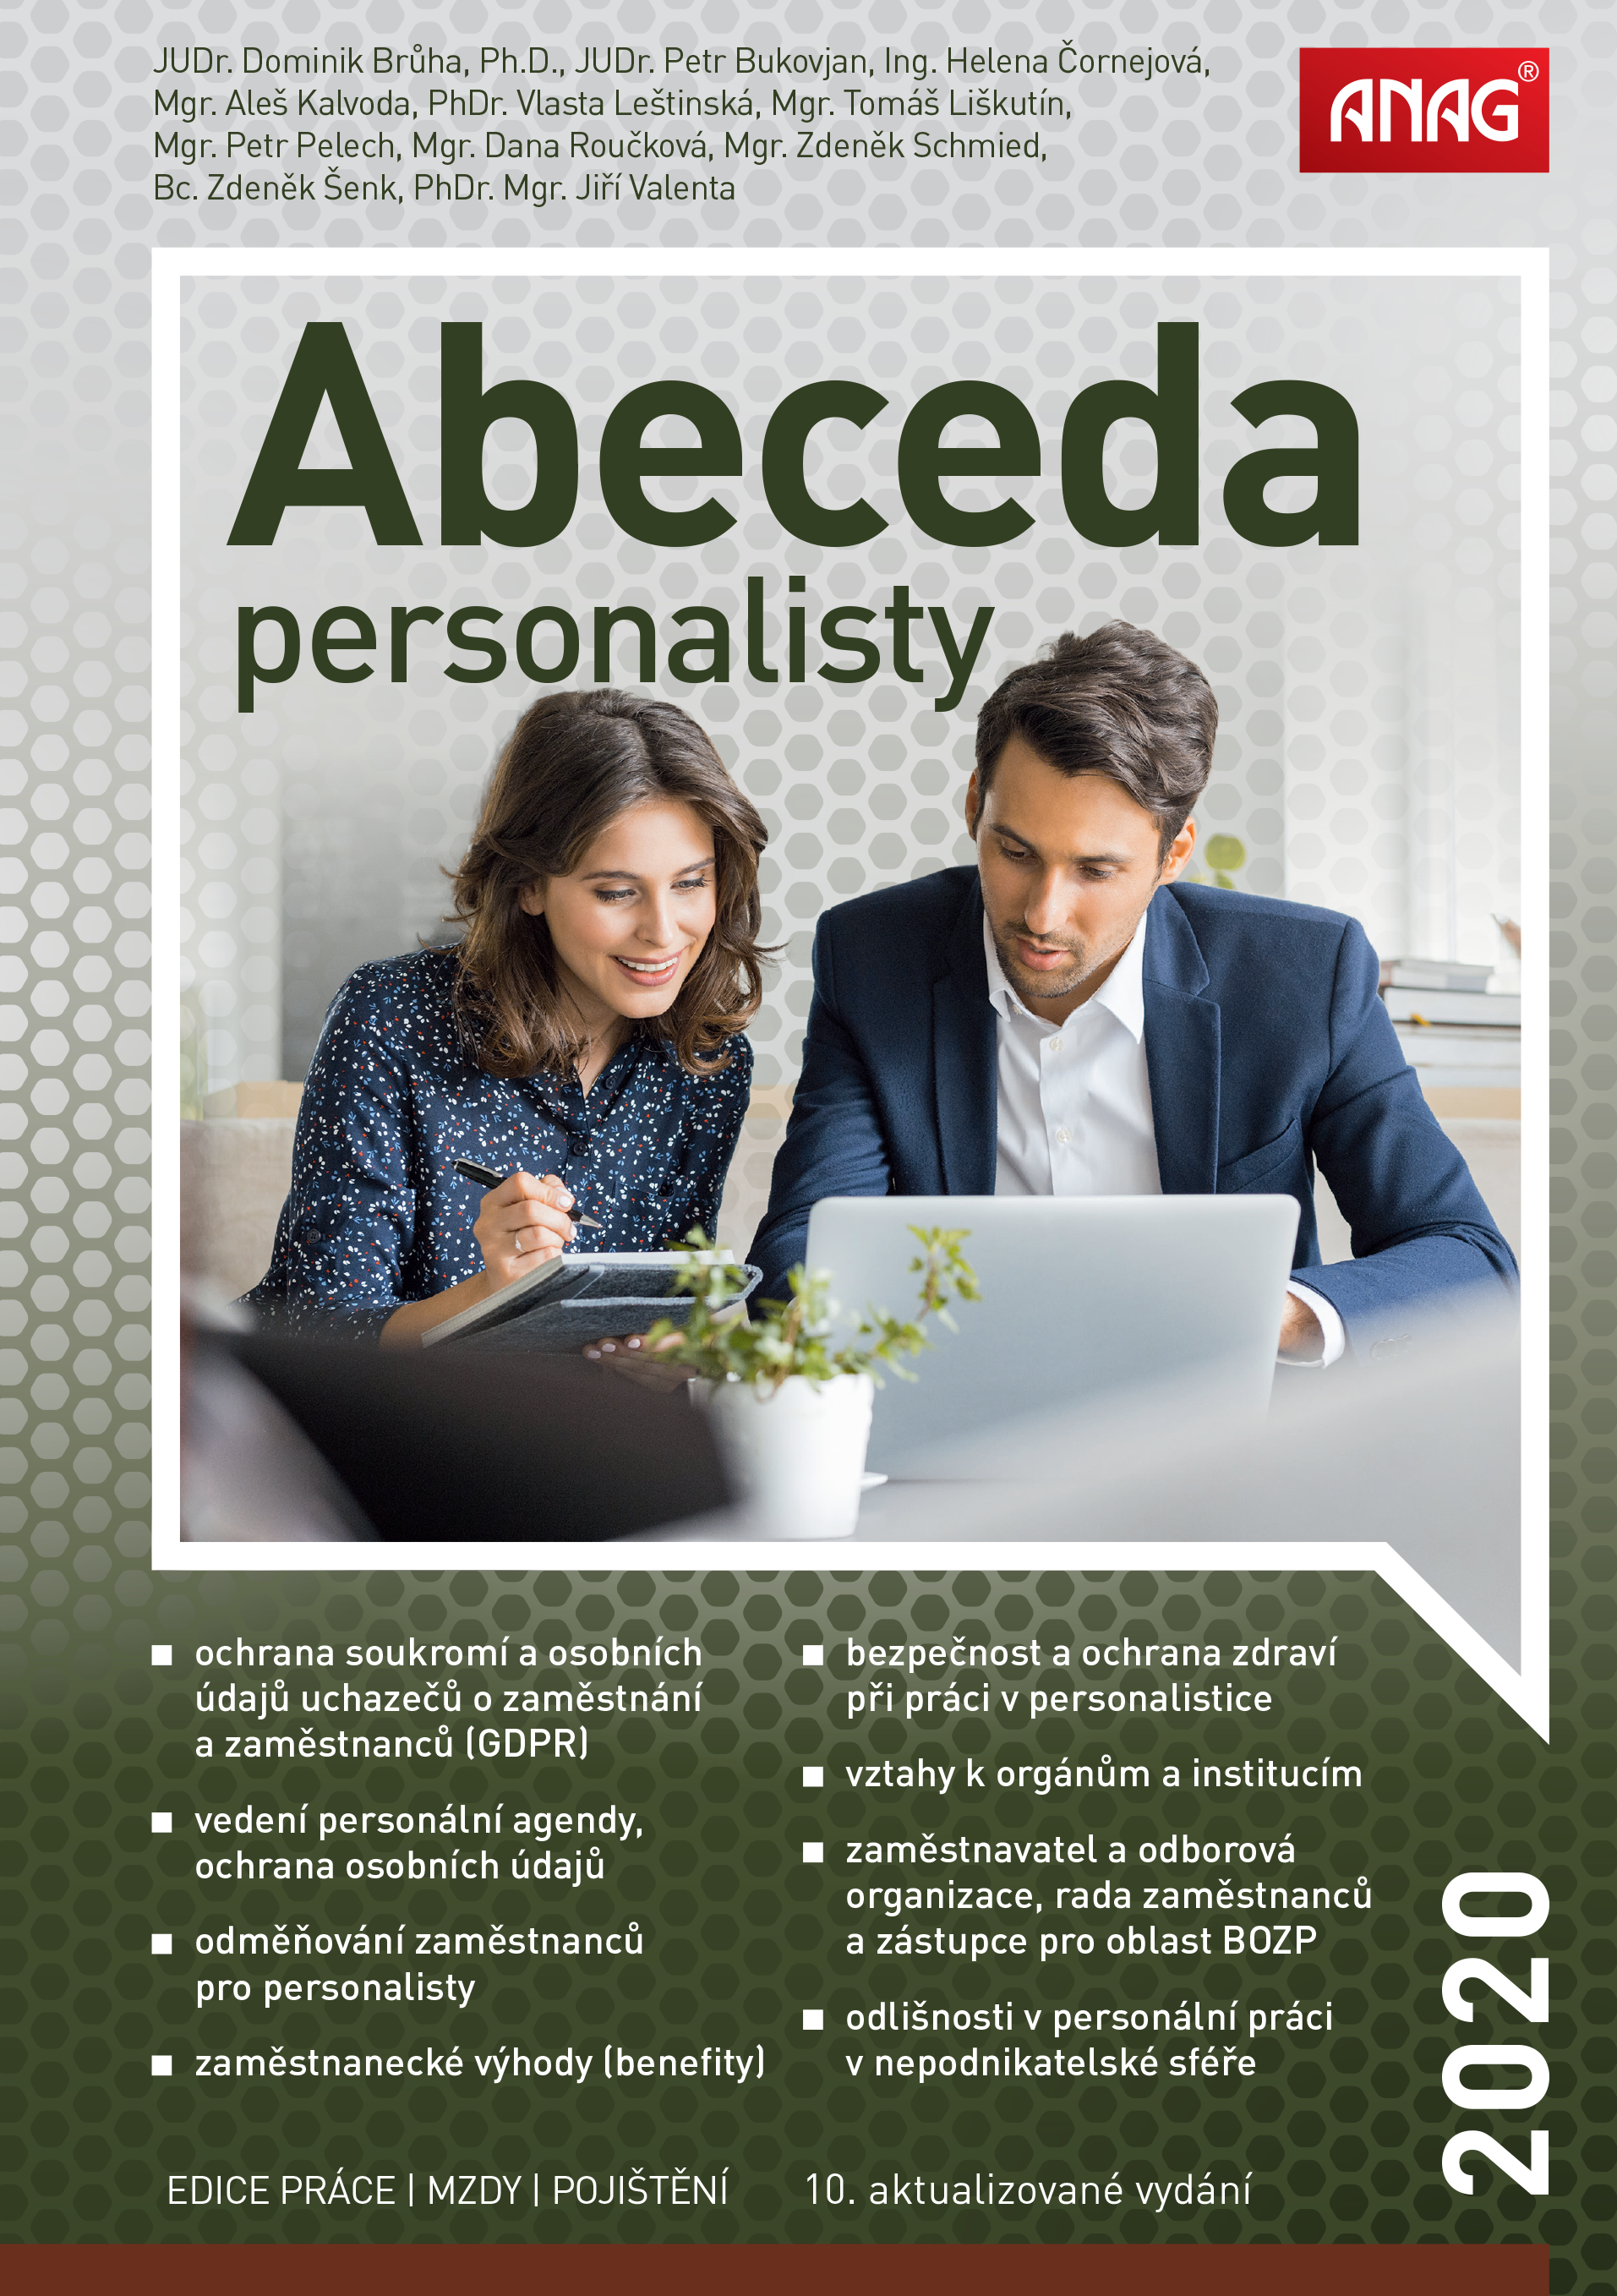 5790 Abeceda personalisty 2020